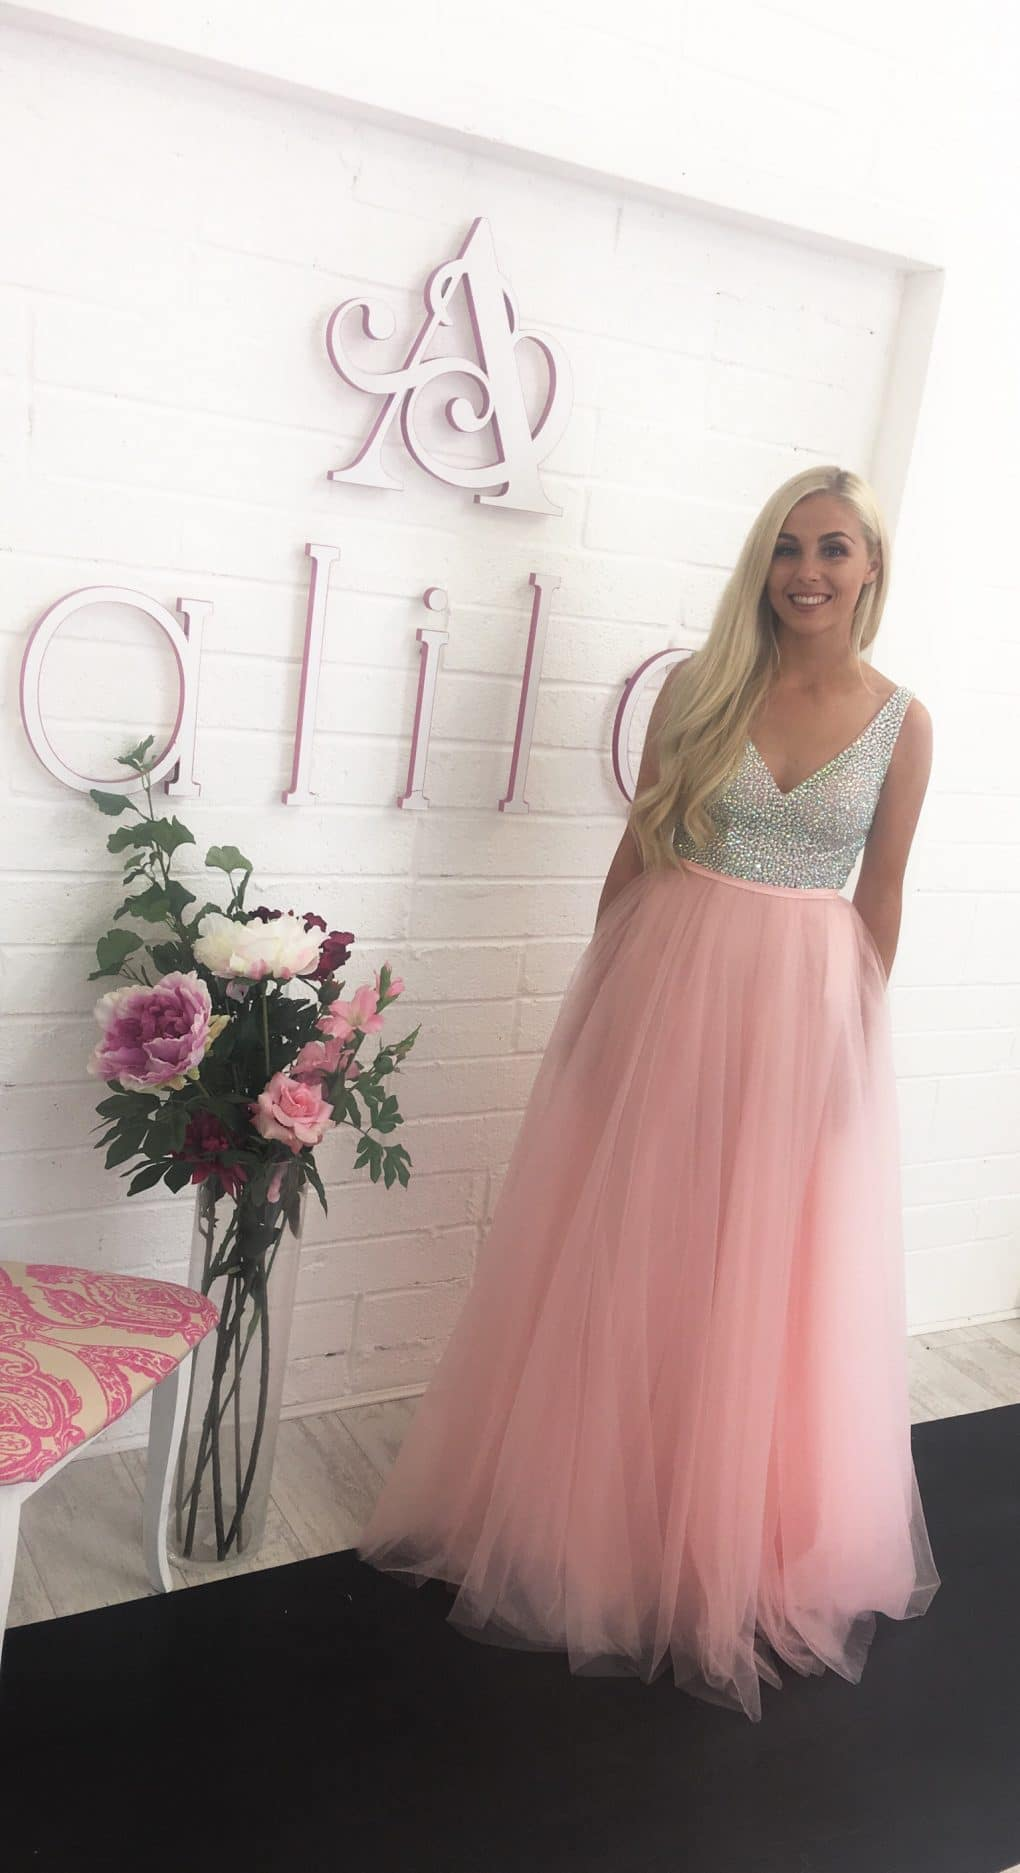 Gino-Cerruti-Pink-Princess-Gown-AnnMaire-3